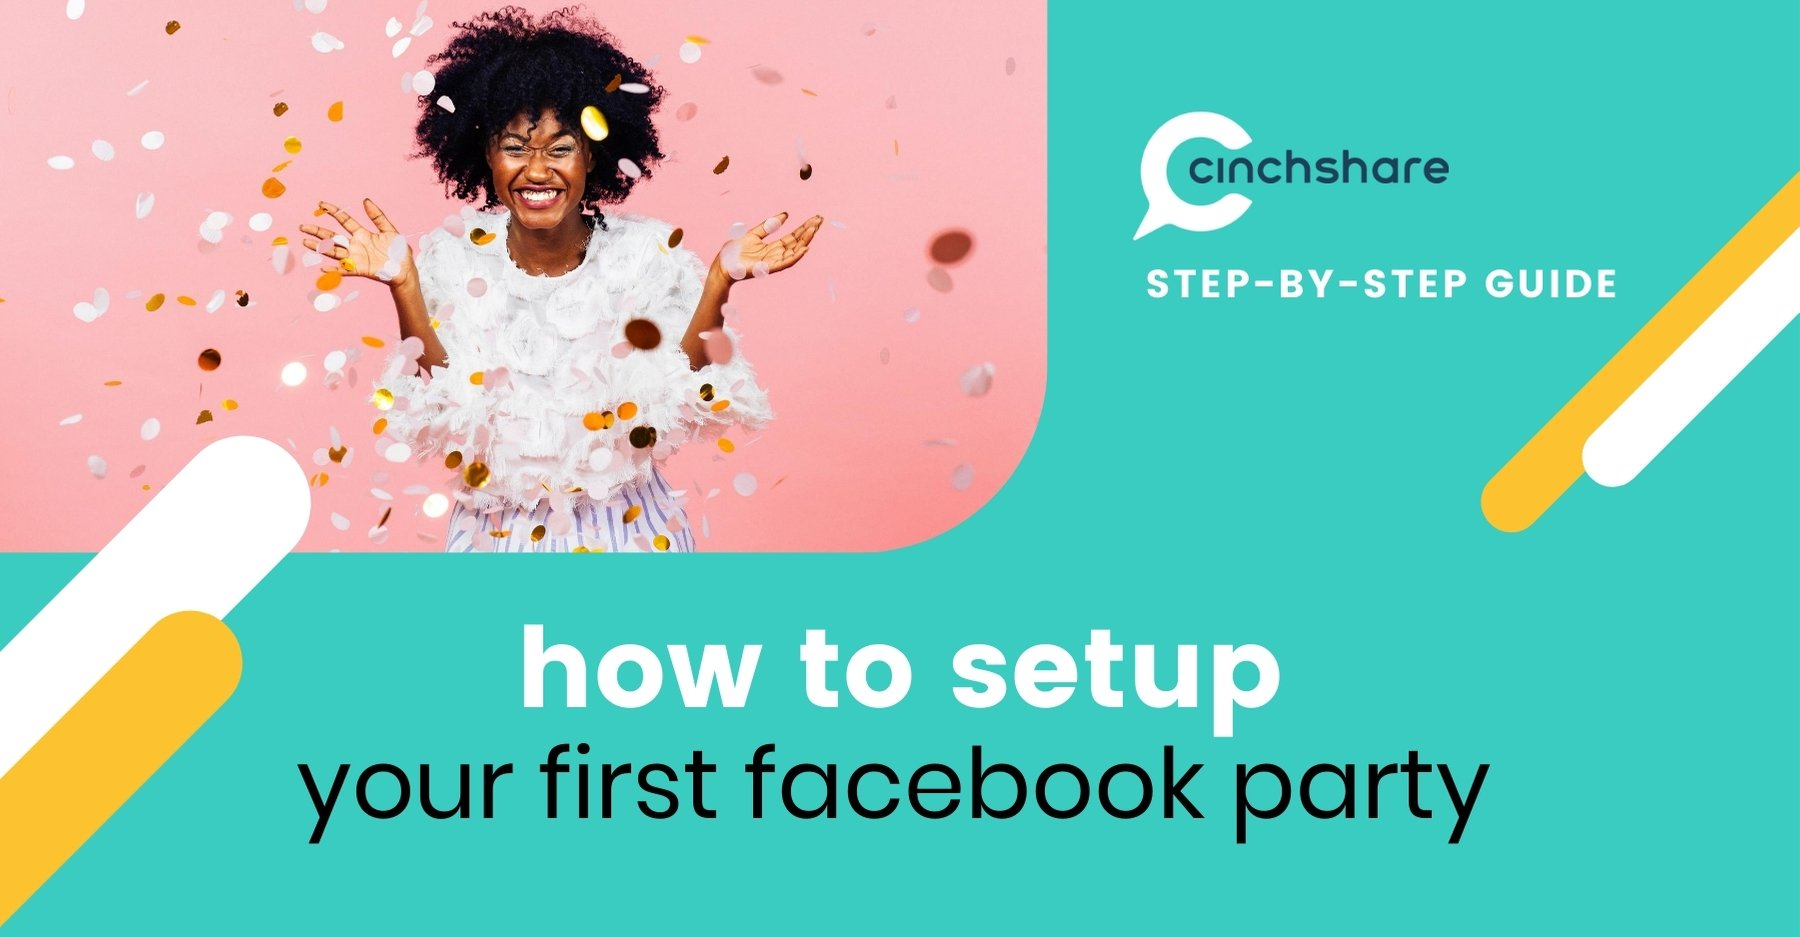 how to setup facebook party in cinchshare